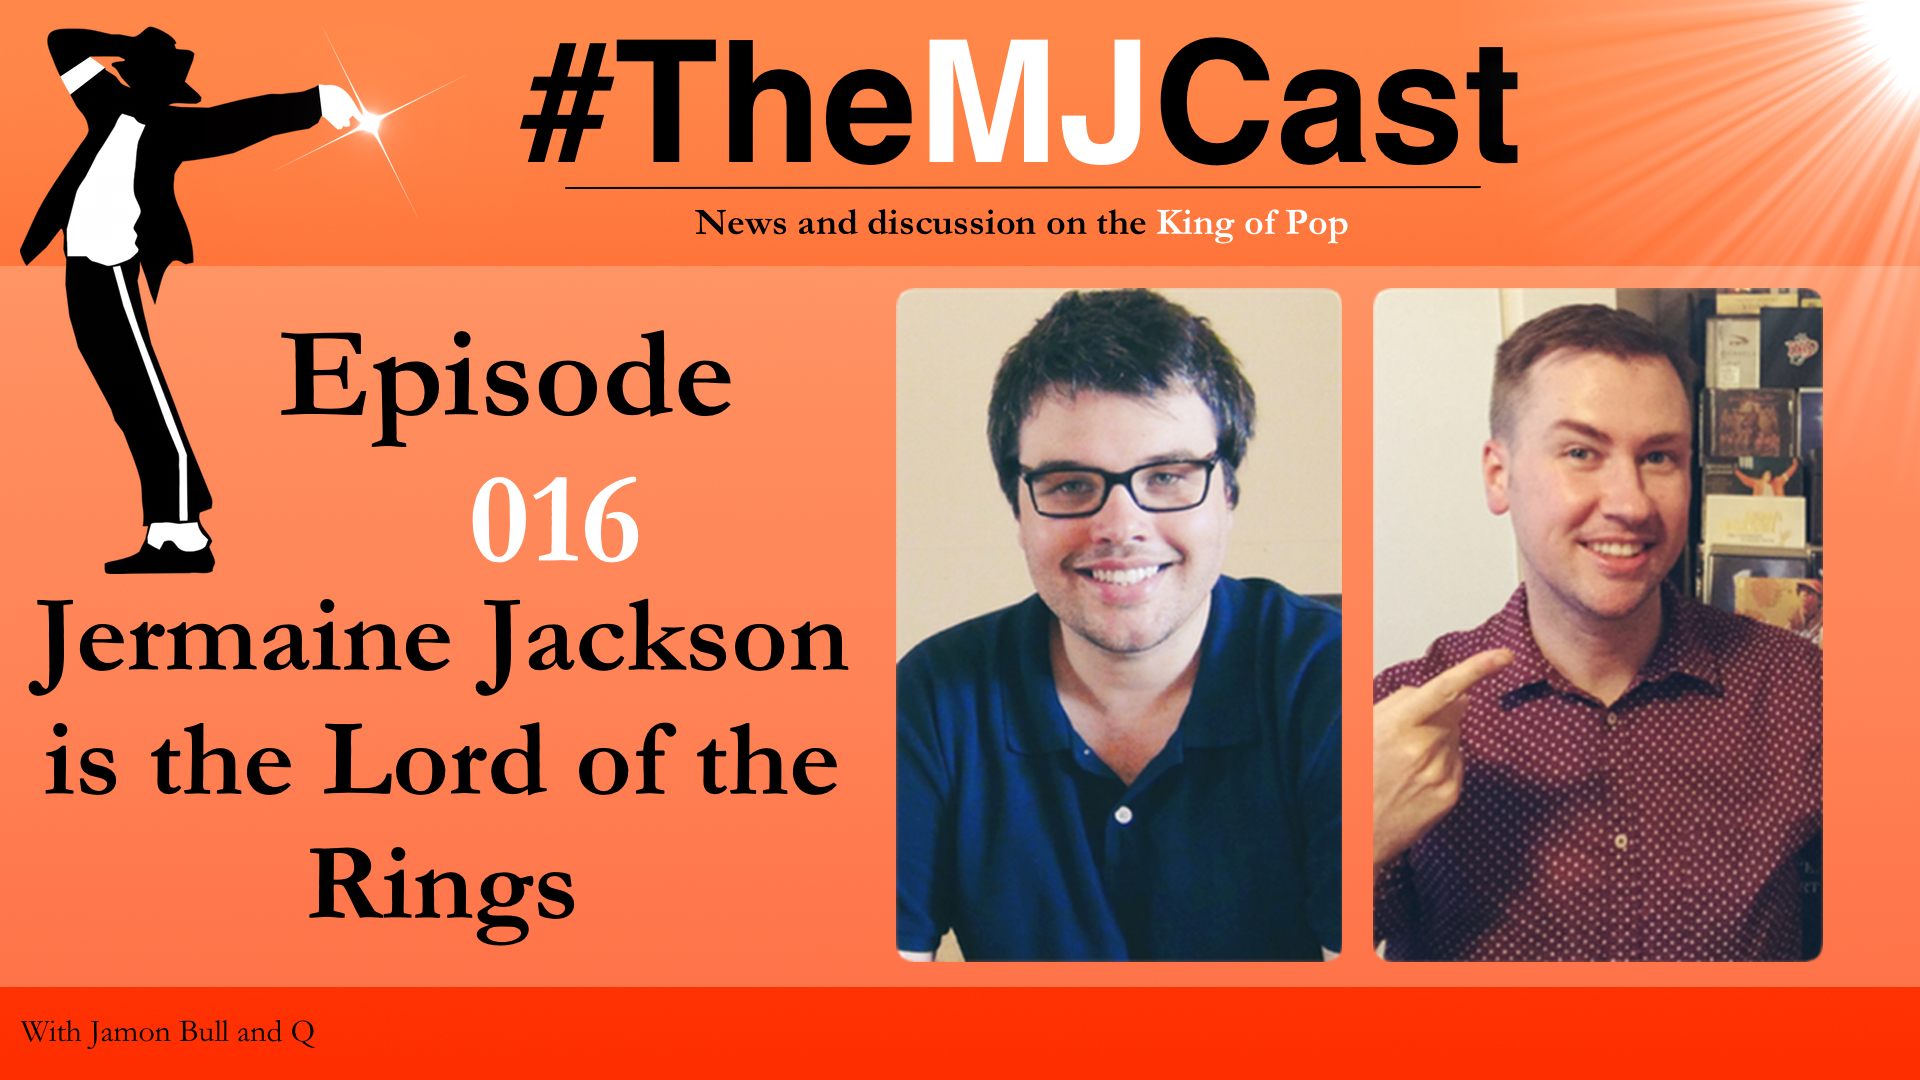 Episode 016 - Jermaine Jackson is the Lord of the Rings YouTube Art